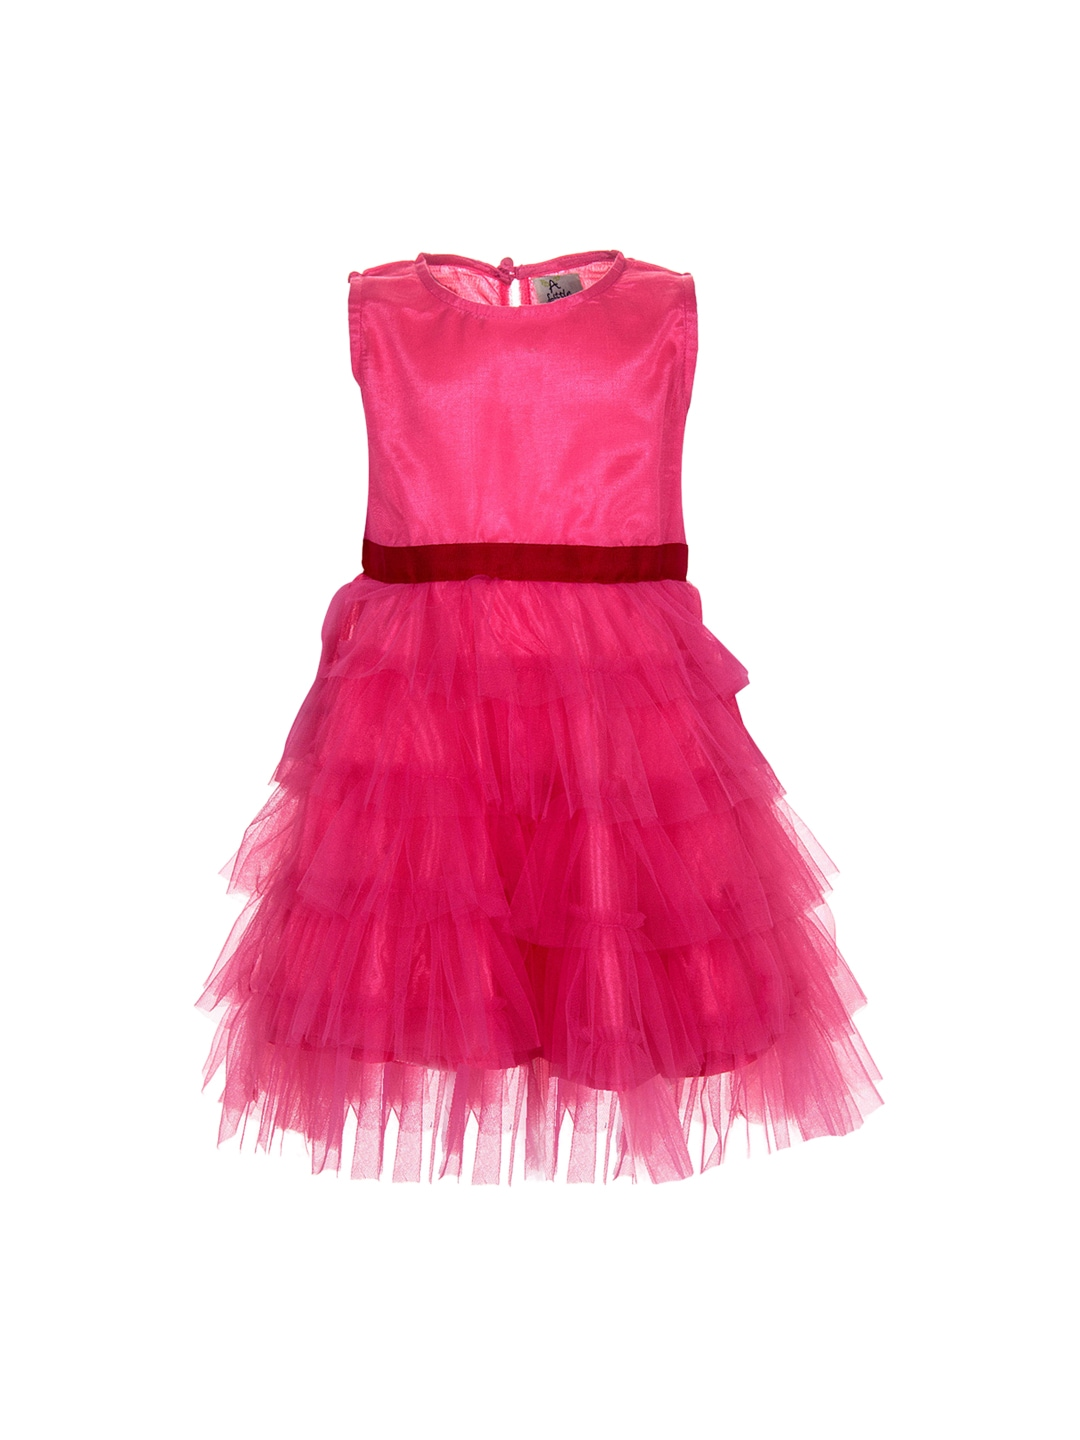 A Little Fable Girls Pink Layered Dress